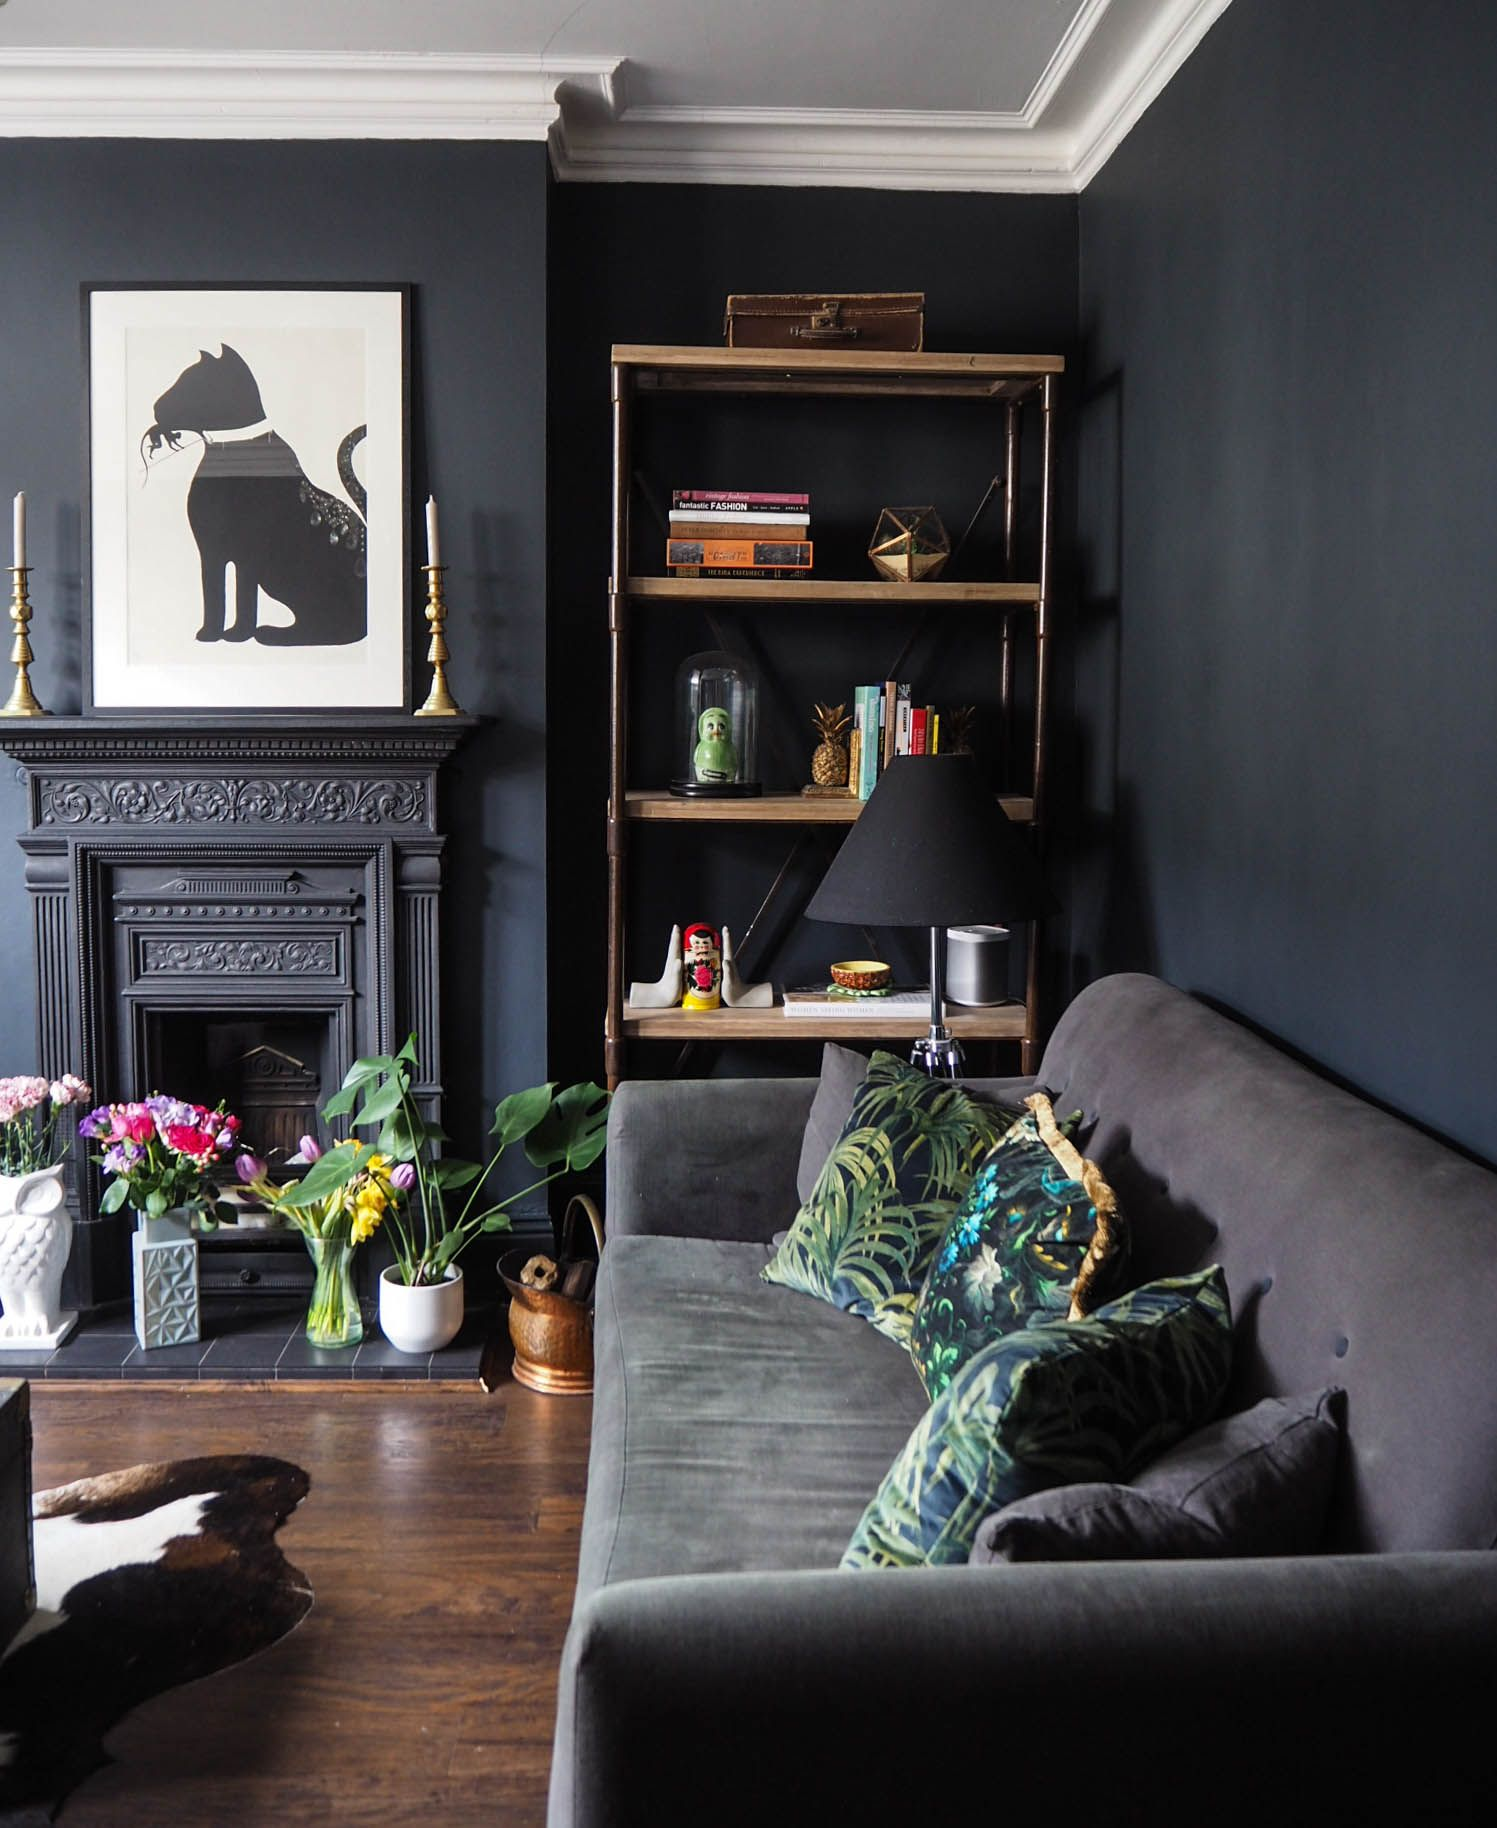 Attractive Http://houselust.co.uk/shopping/2017/4/1/savvy Shopping My Bargain House  Of Hackney Cushions